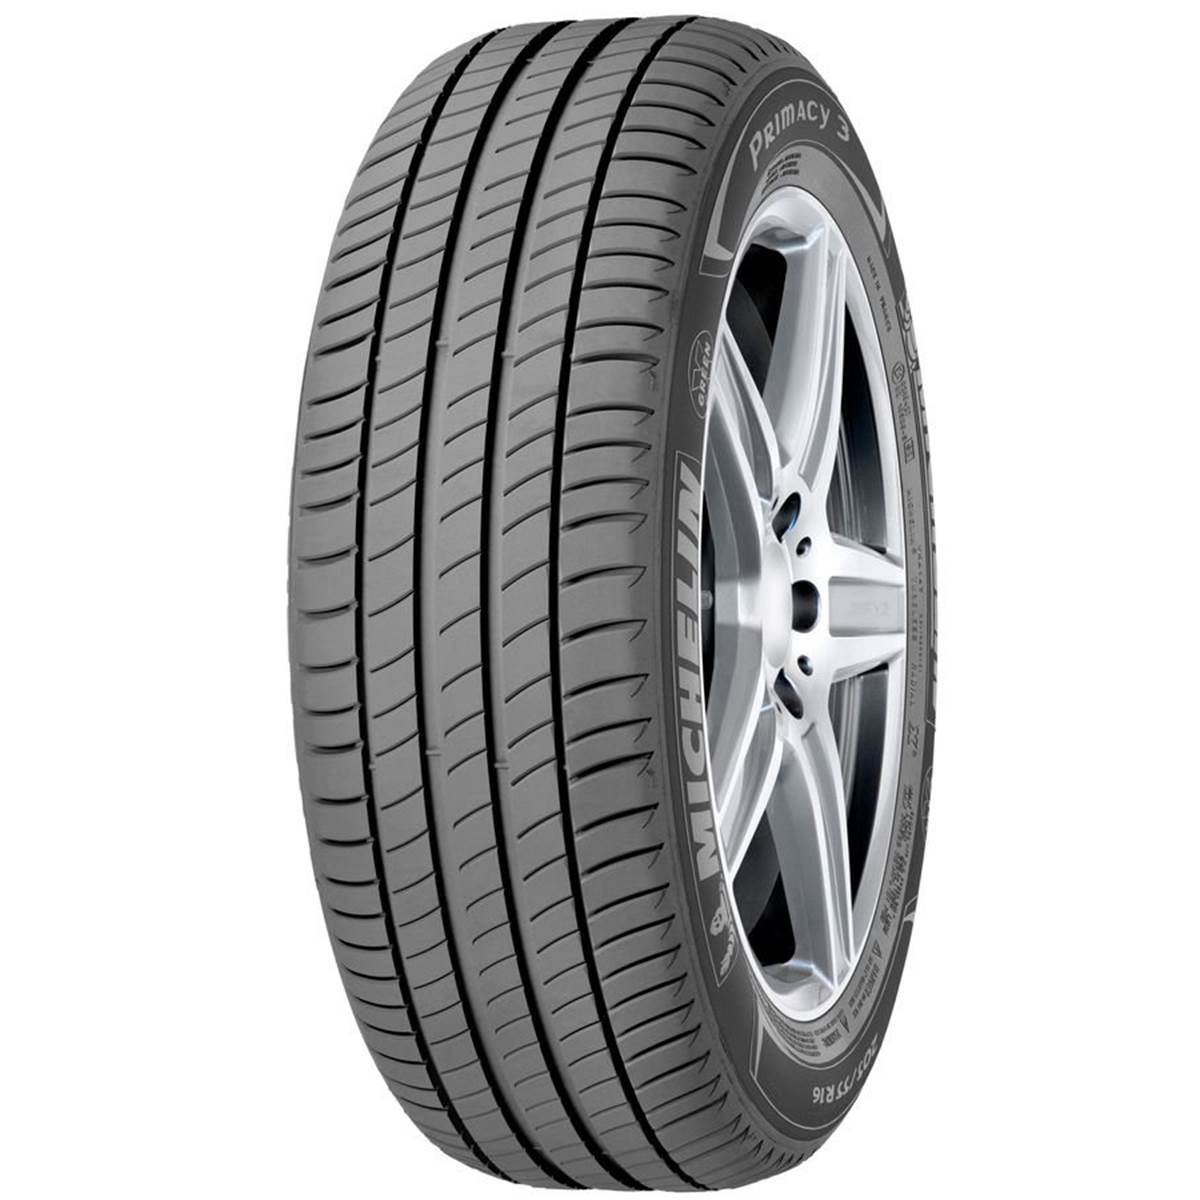 Pneu Michelin 225/55R18 98V Primacy 3